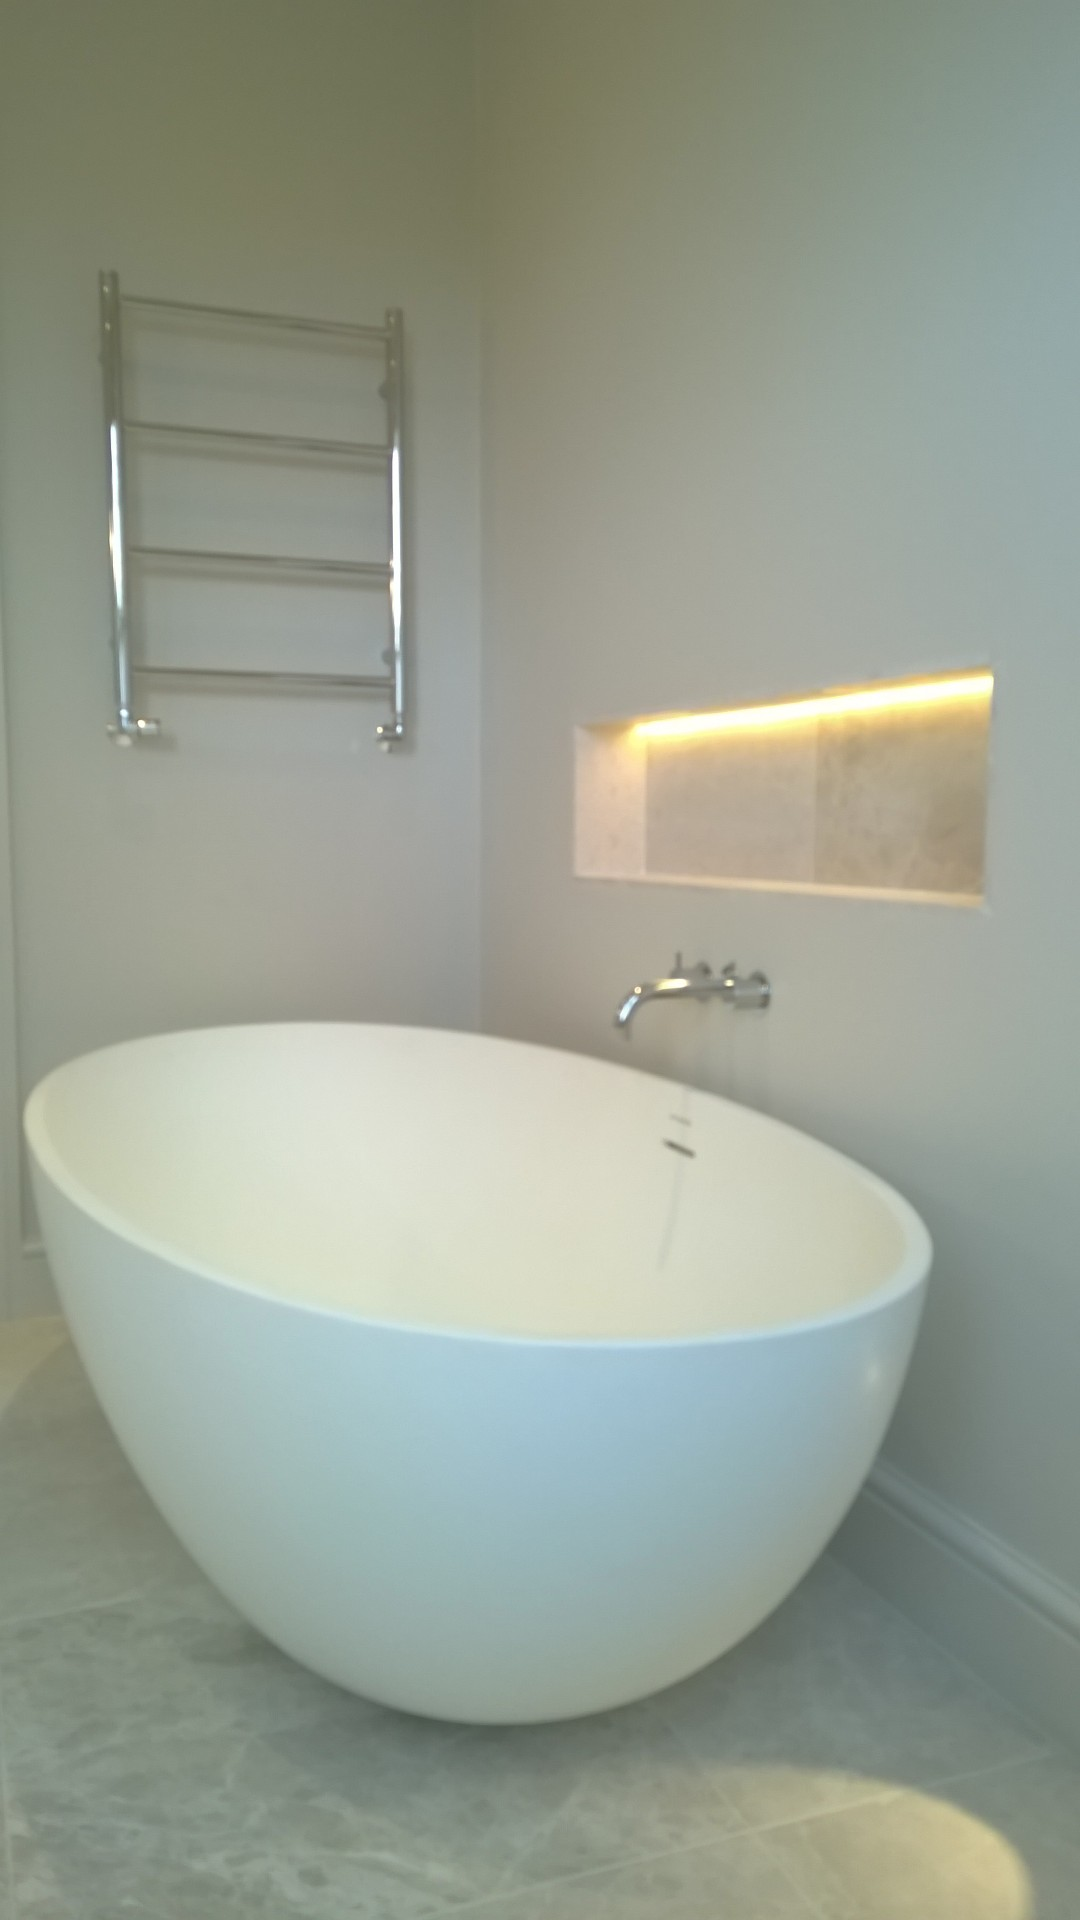 A free standing bath with a wall mounted bath filler tap